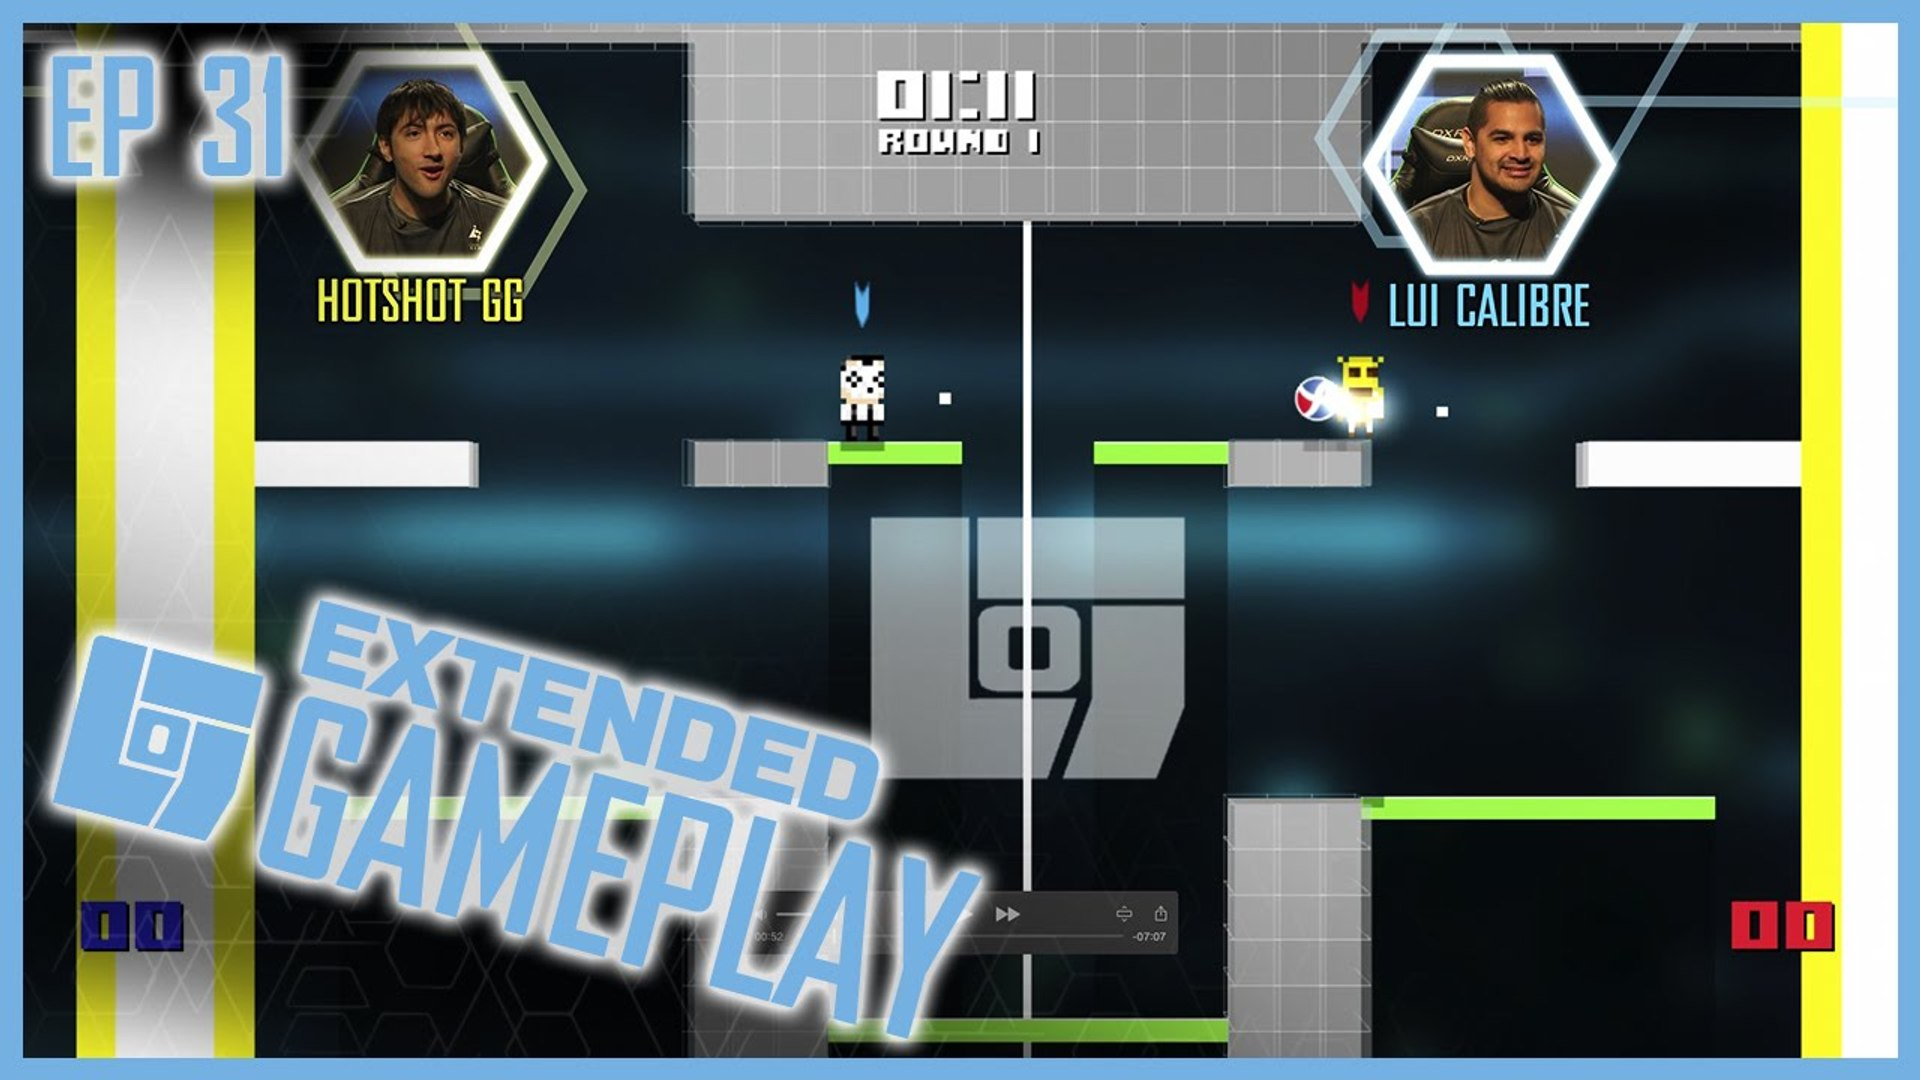 EP 31 Full Gameplay  |  #iDARB | Lui Calibre vs Hotshot GG